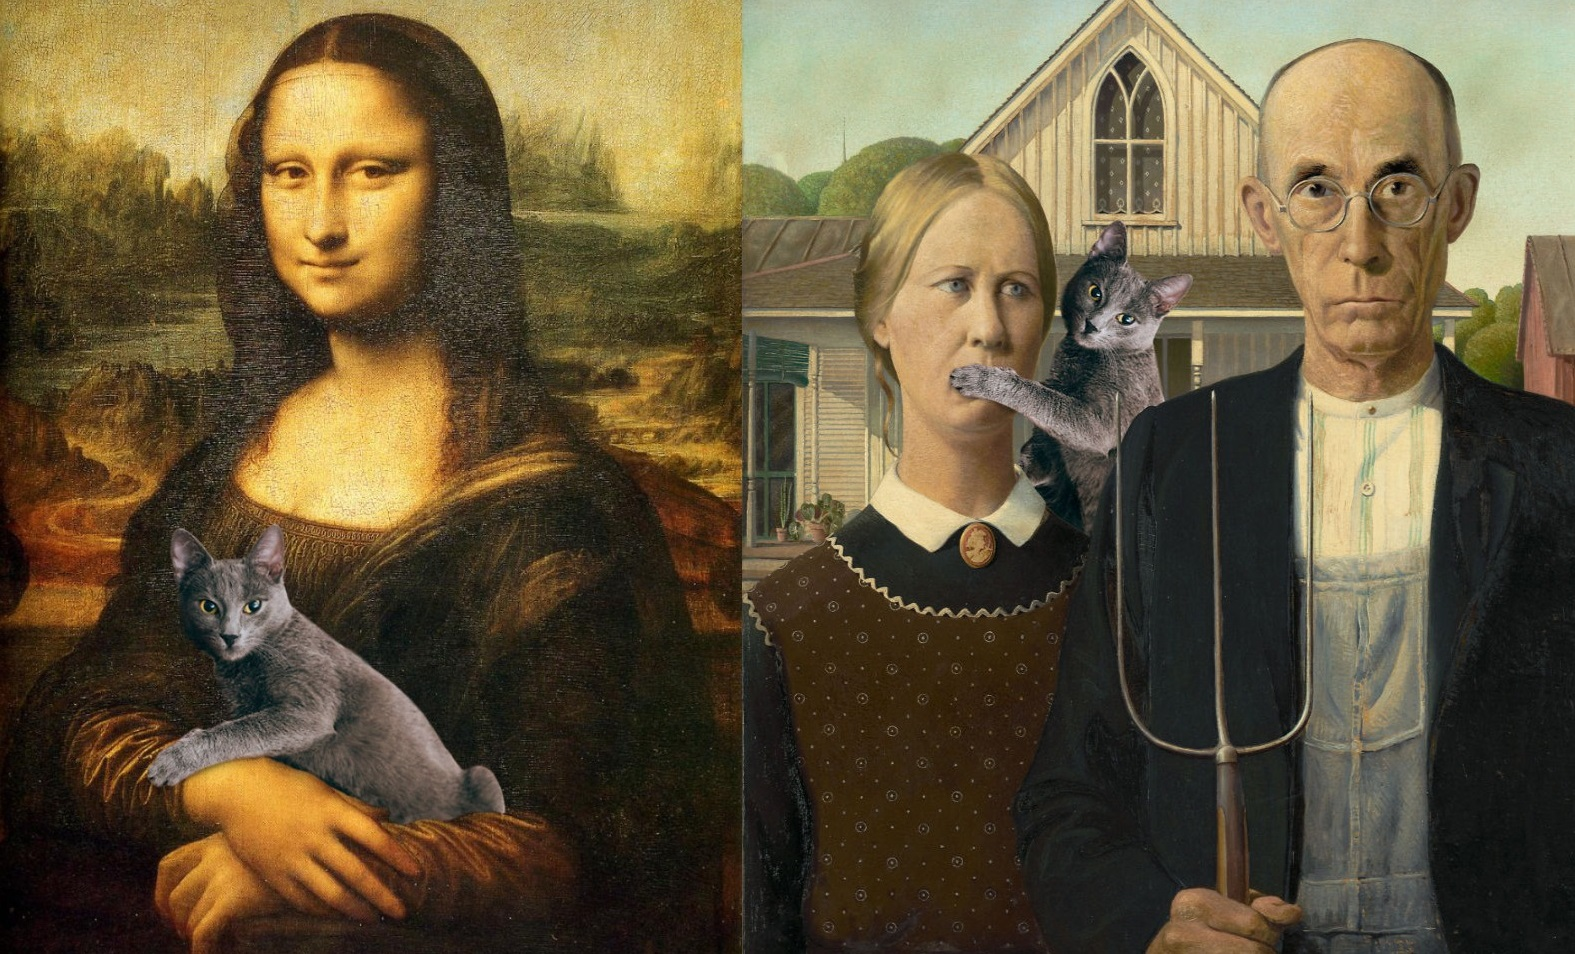 Eduard Cistea Photoshops His Cat Into Classical Paintings And The